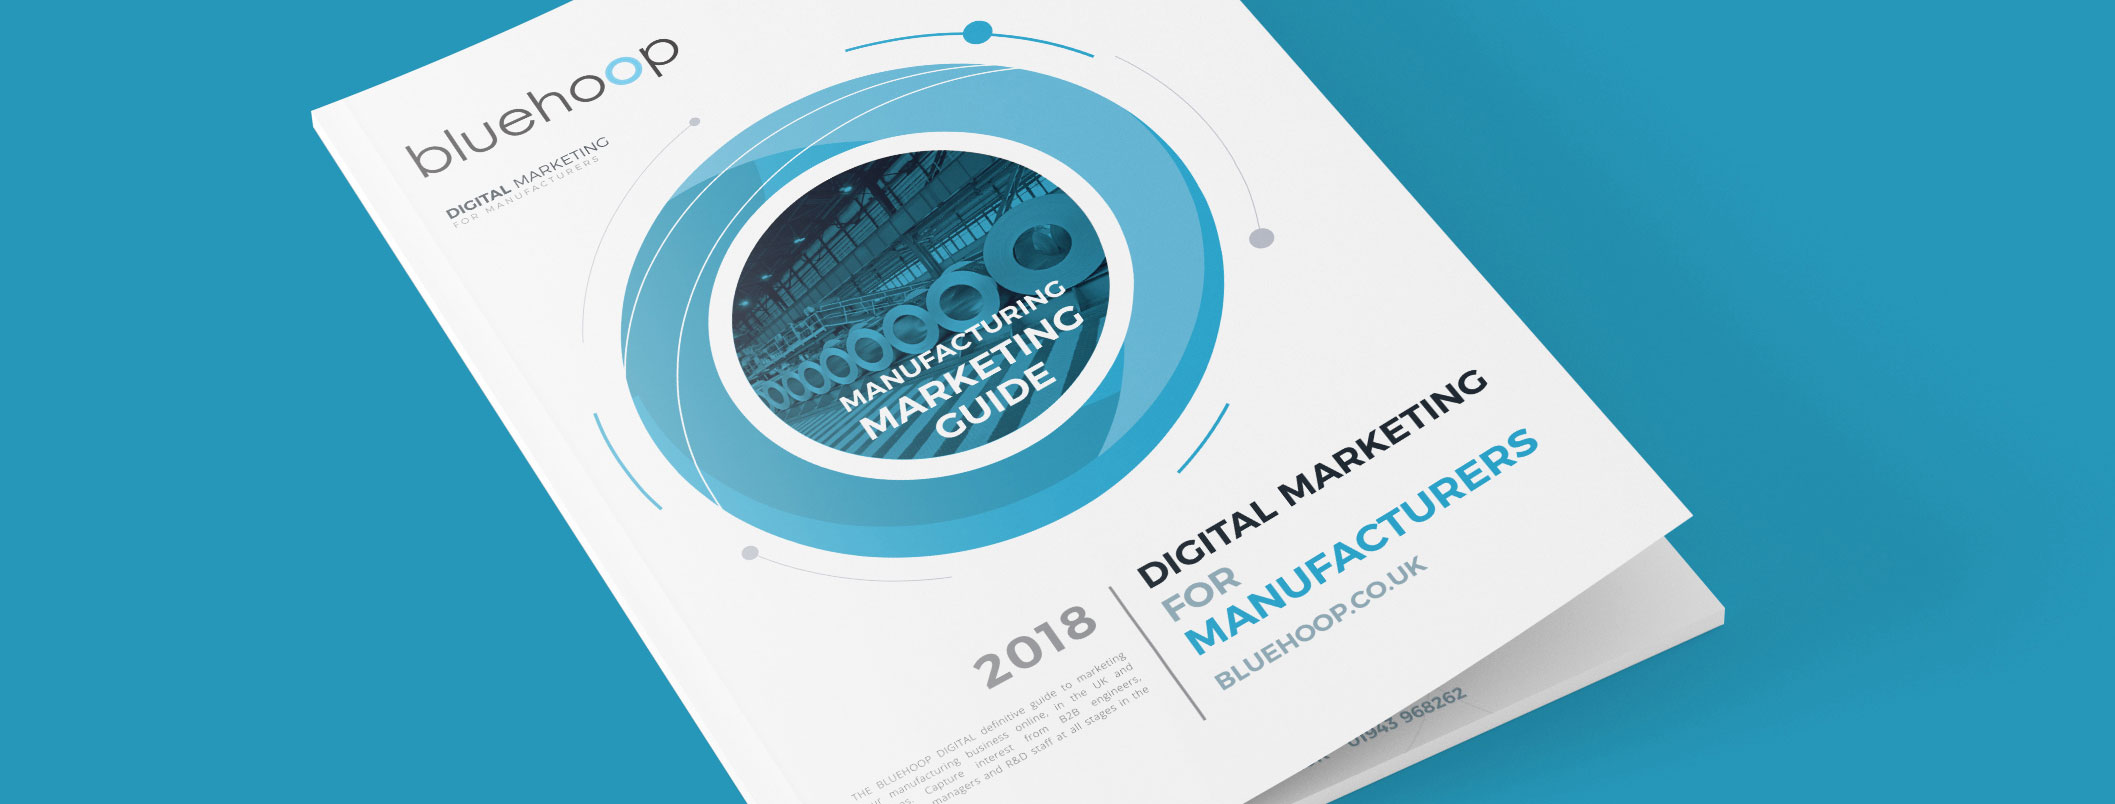 Marketing in 2018 for Manufacturing Businesses Cover